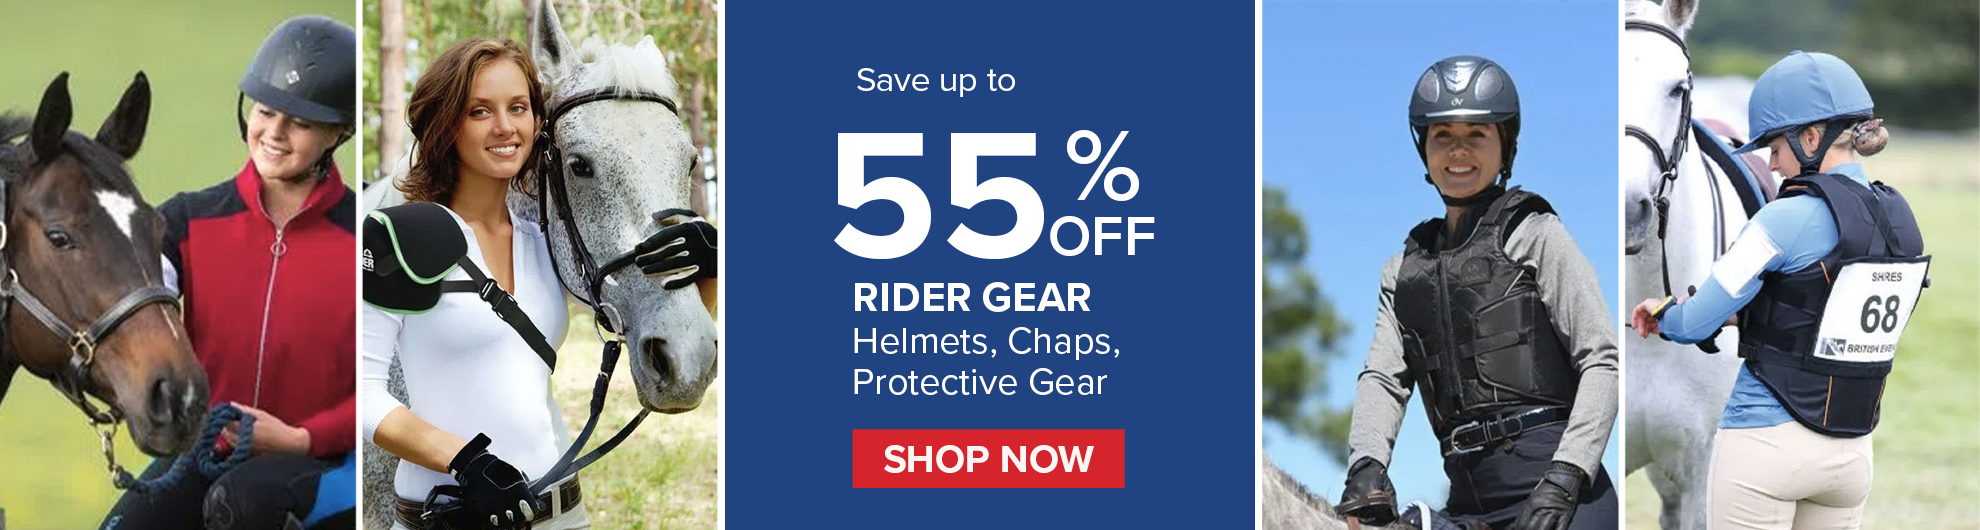 Ride Gear and Rider Helmets